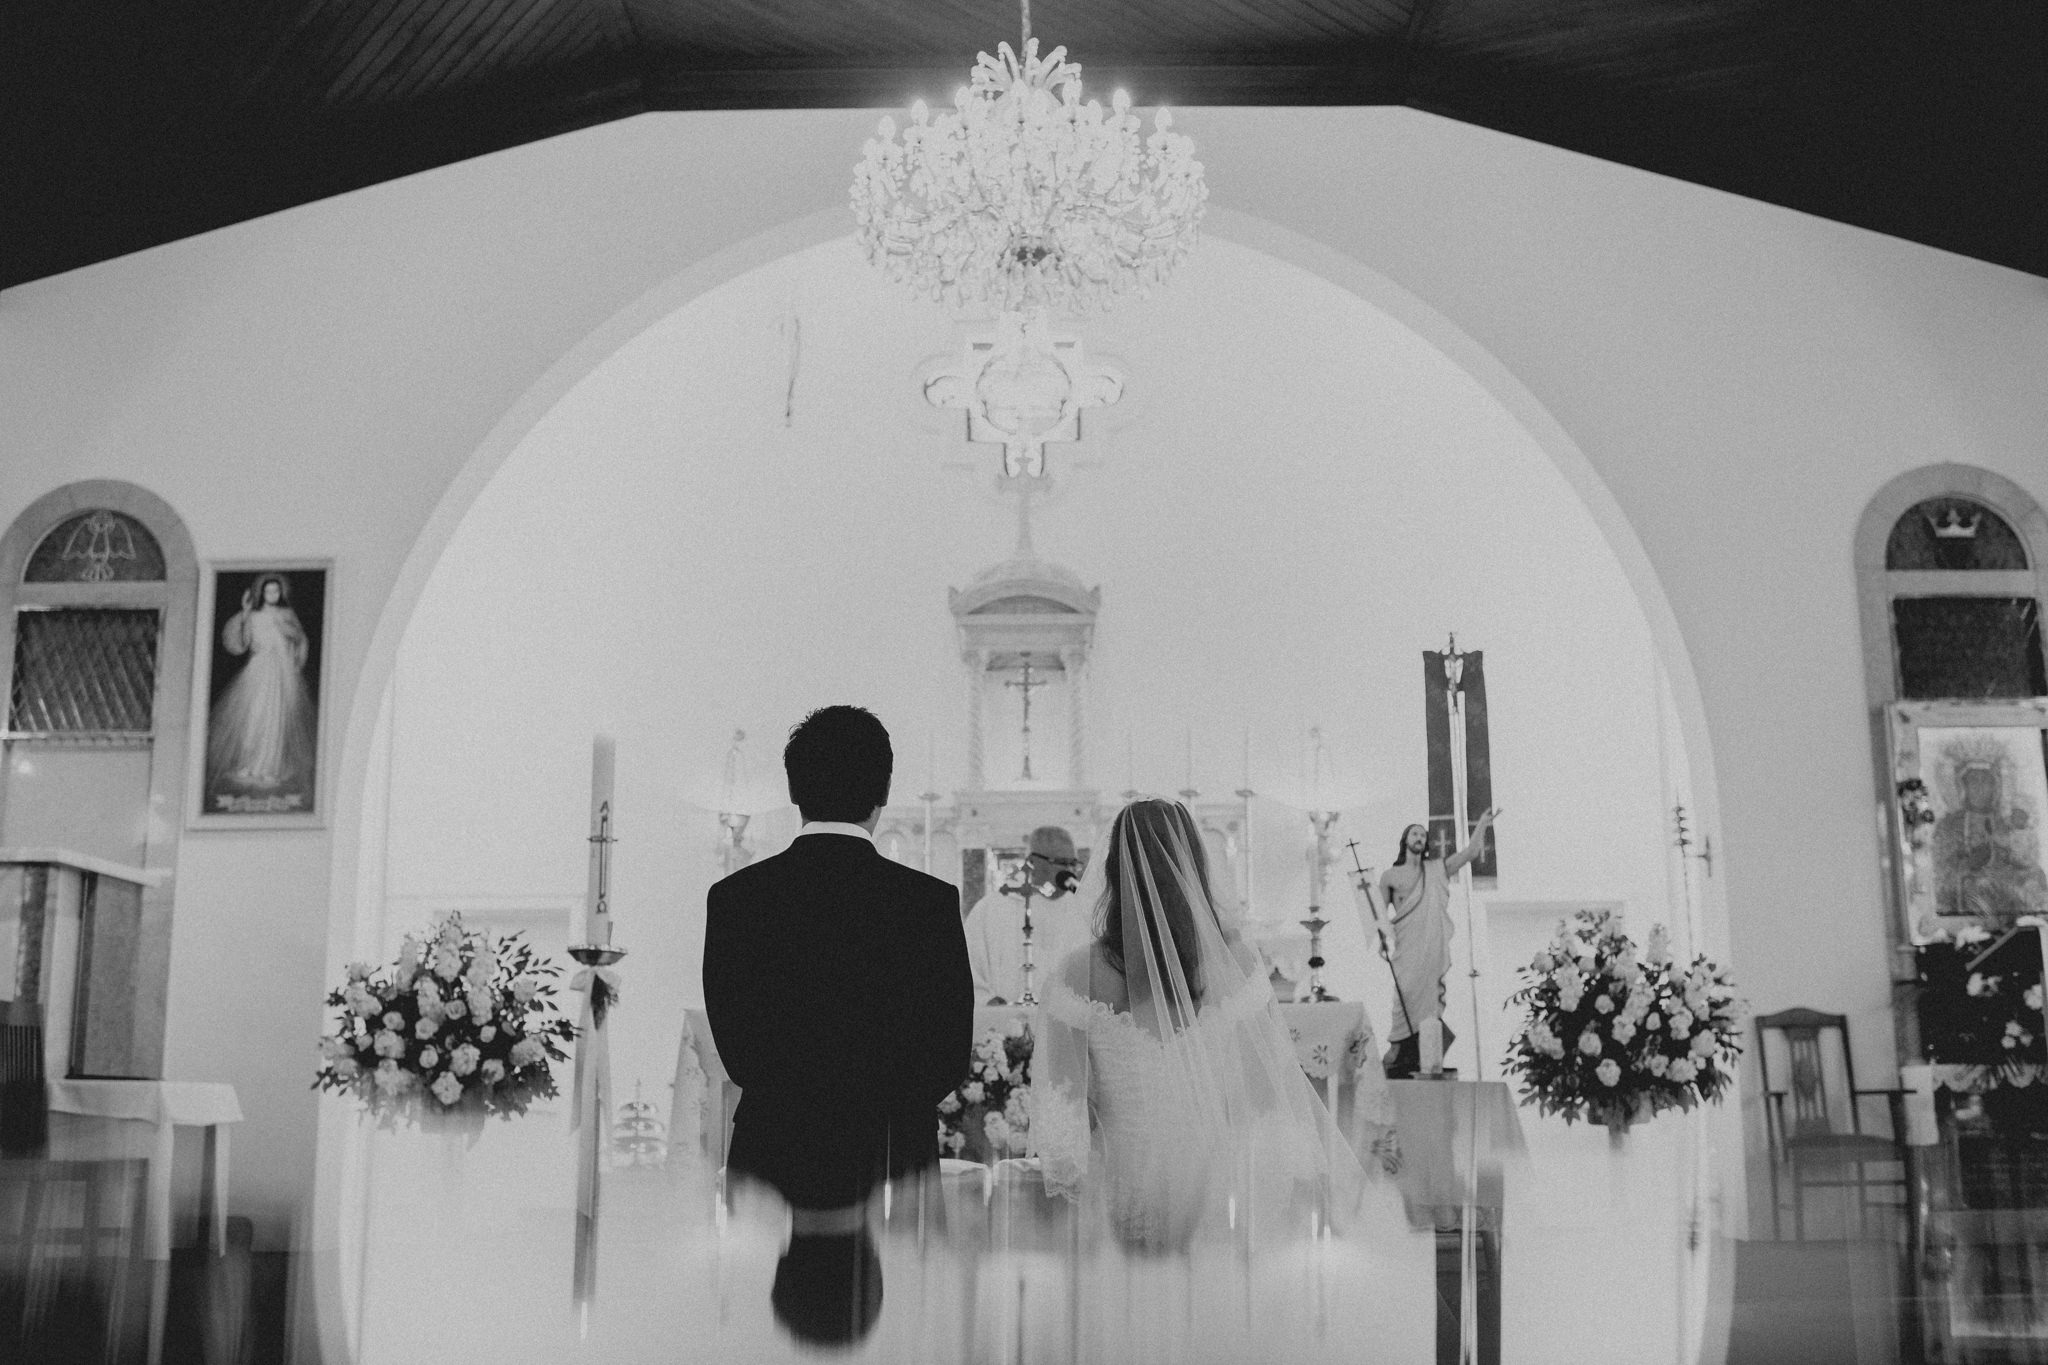 Bride and groom kneel in front of priest and altar at Catholic wedding ceremony